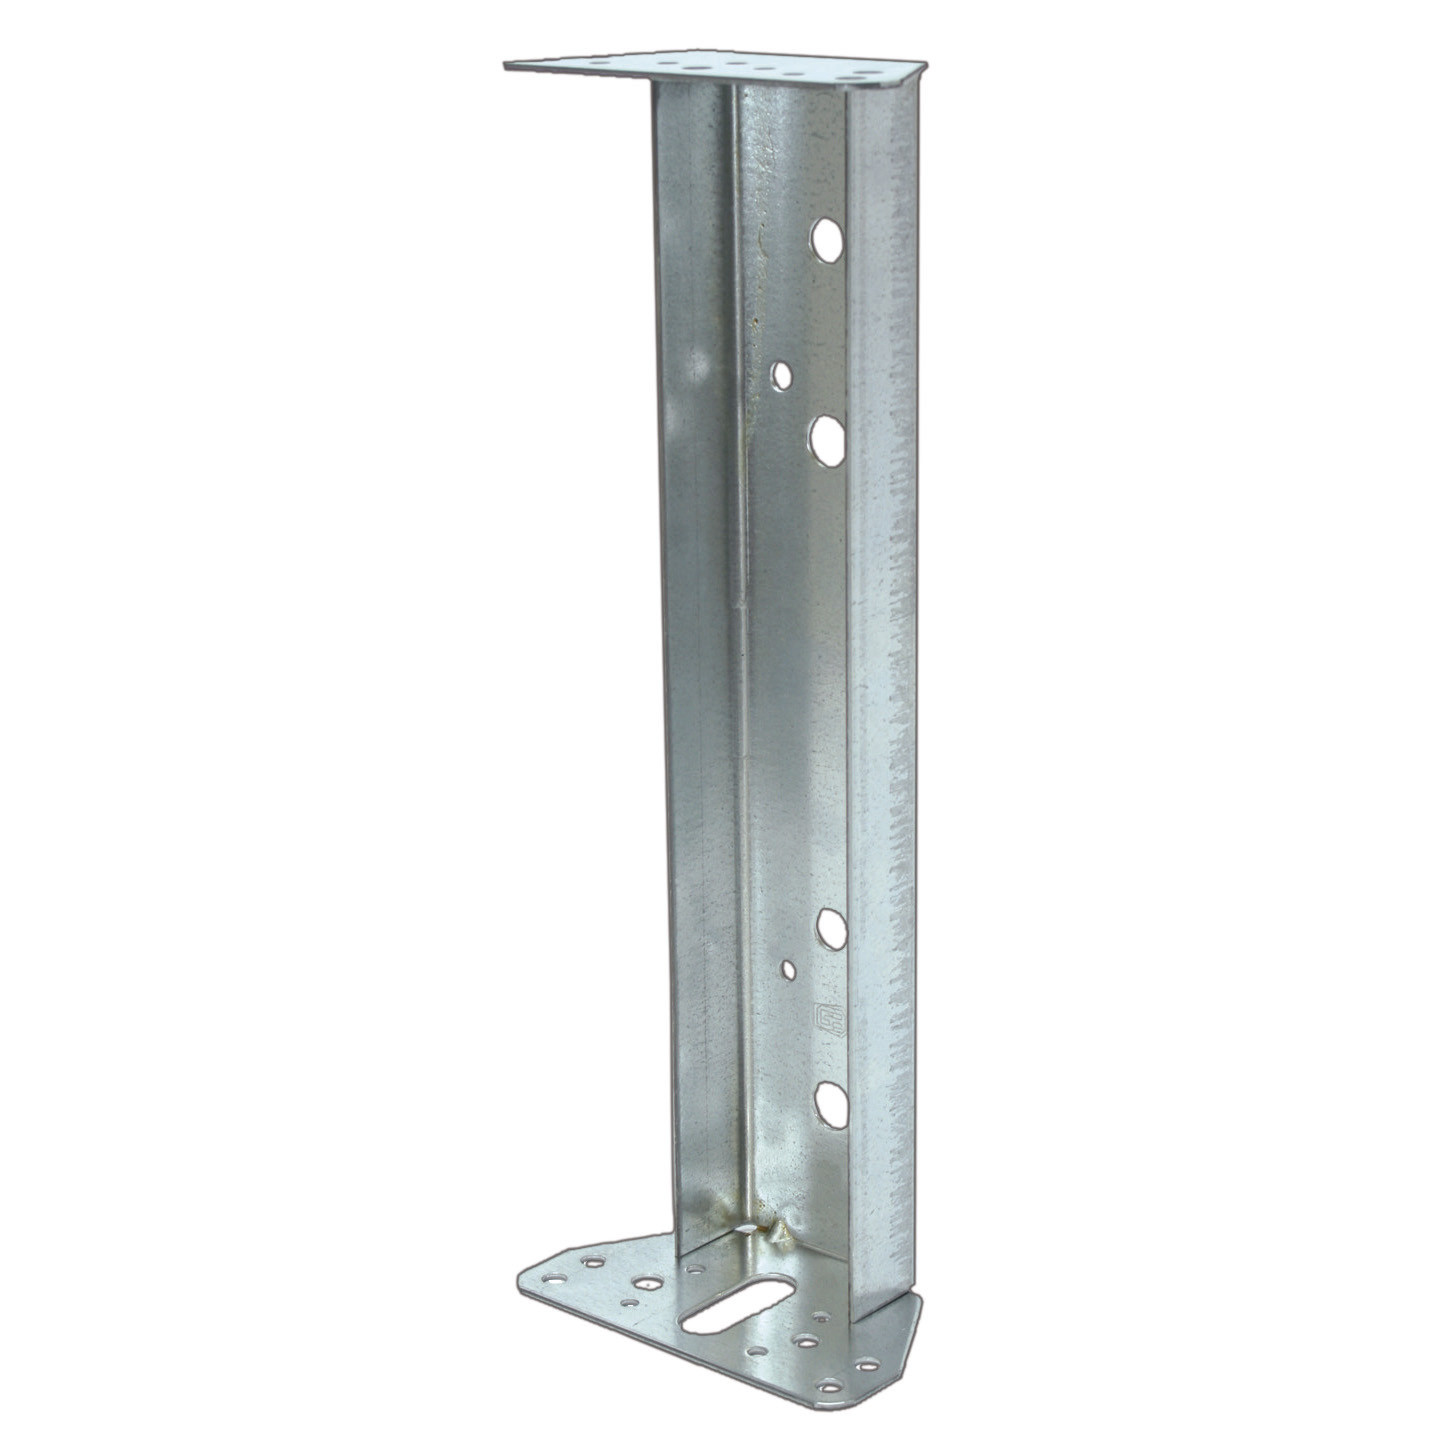 Window front frame support 60x70x380 115x2 ZM